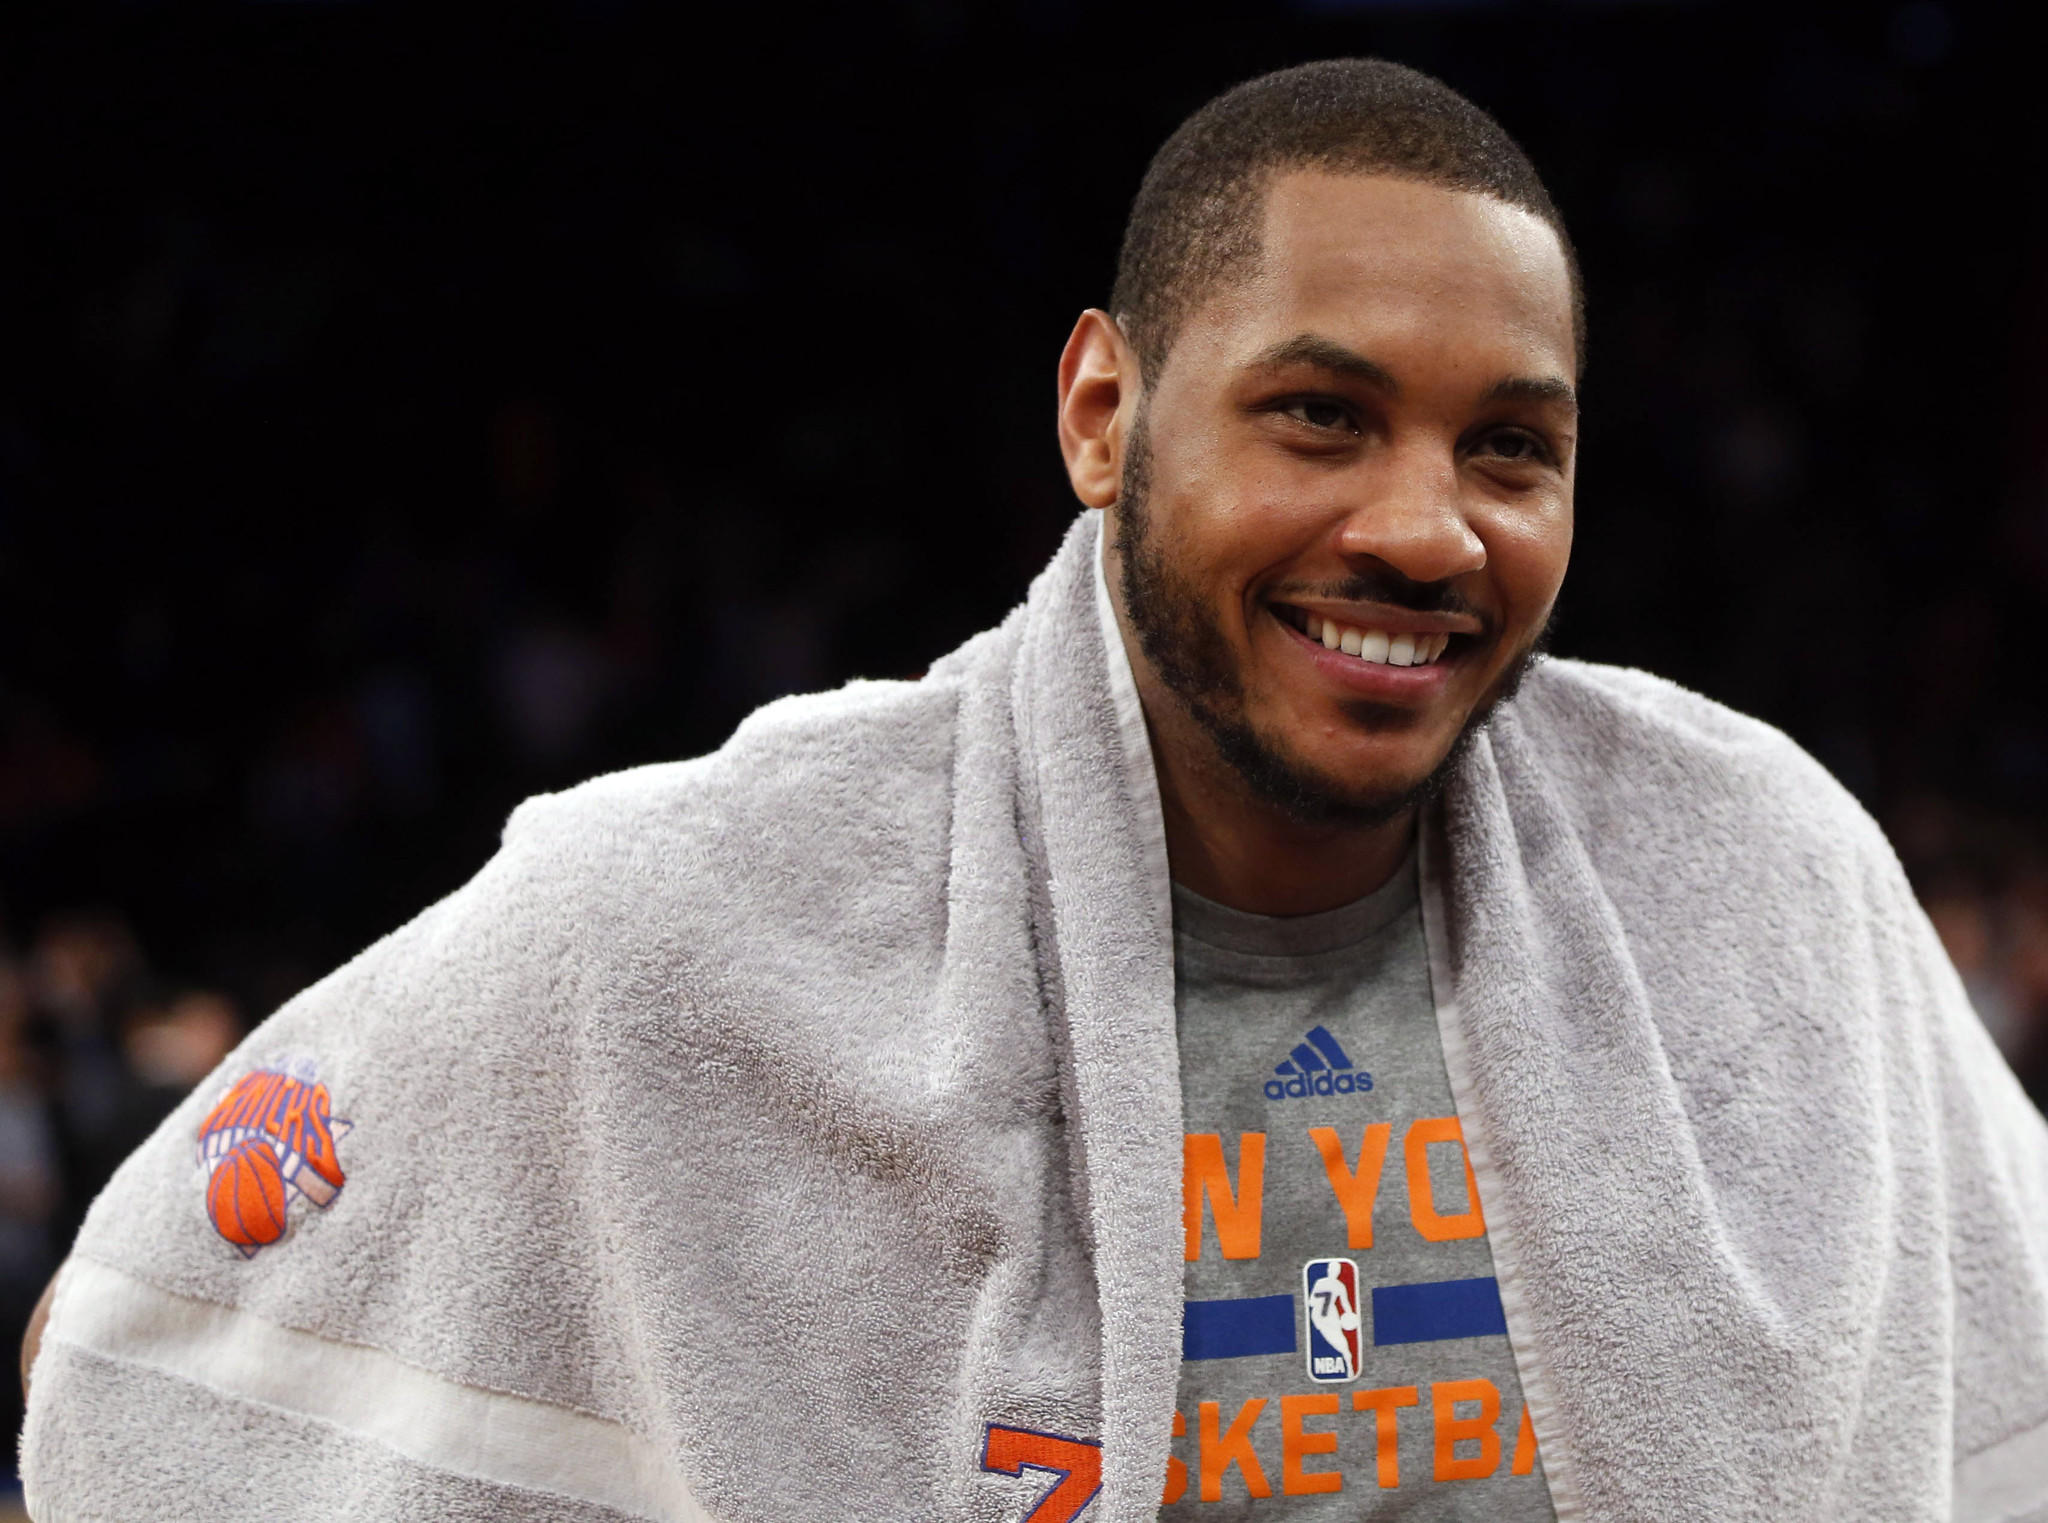 New York Knicks small forward Carmelo Anthony (7) smiles at the end of the game against the Charlotte Bobcats at Madison Square Garden. the Knicks won 125-96.